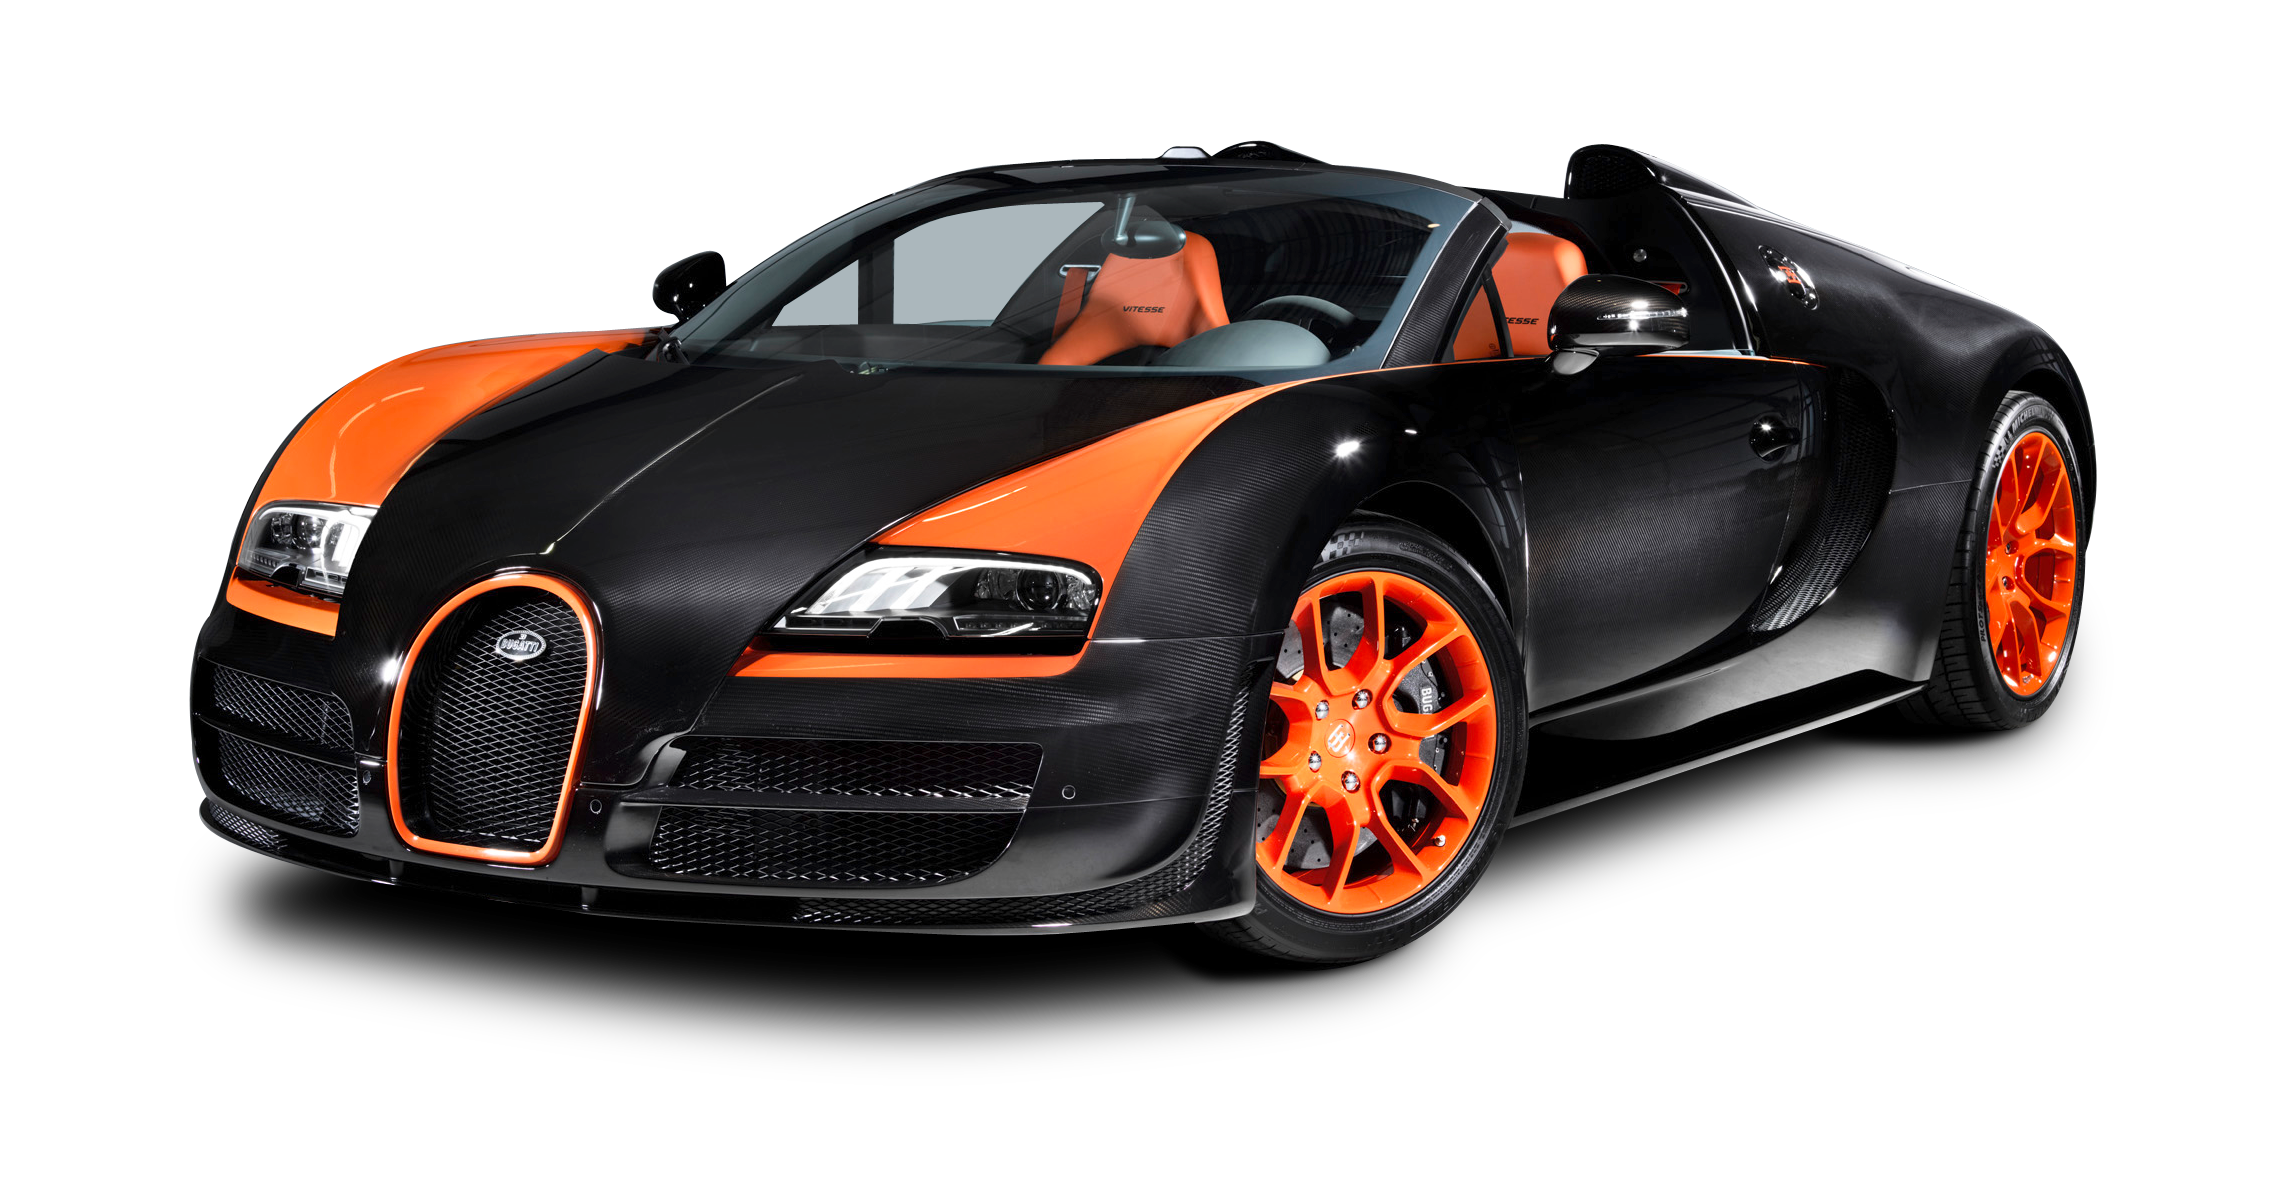 Bugatti png images free. Motor vector w16 clip art freeuse